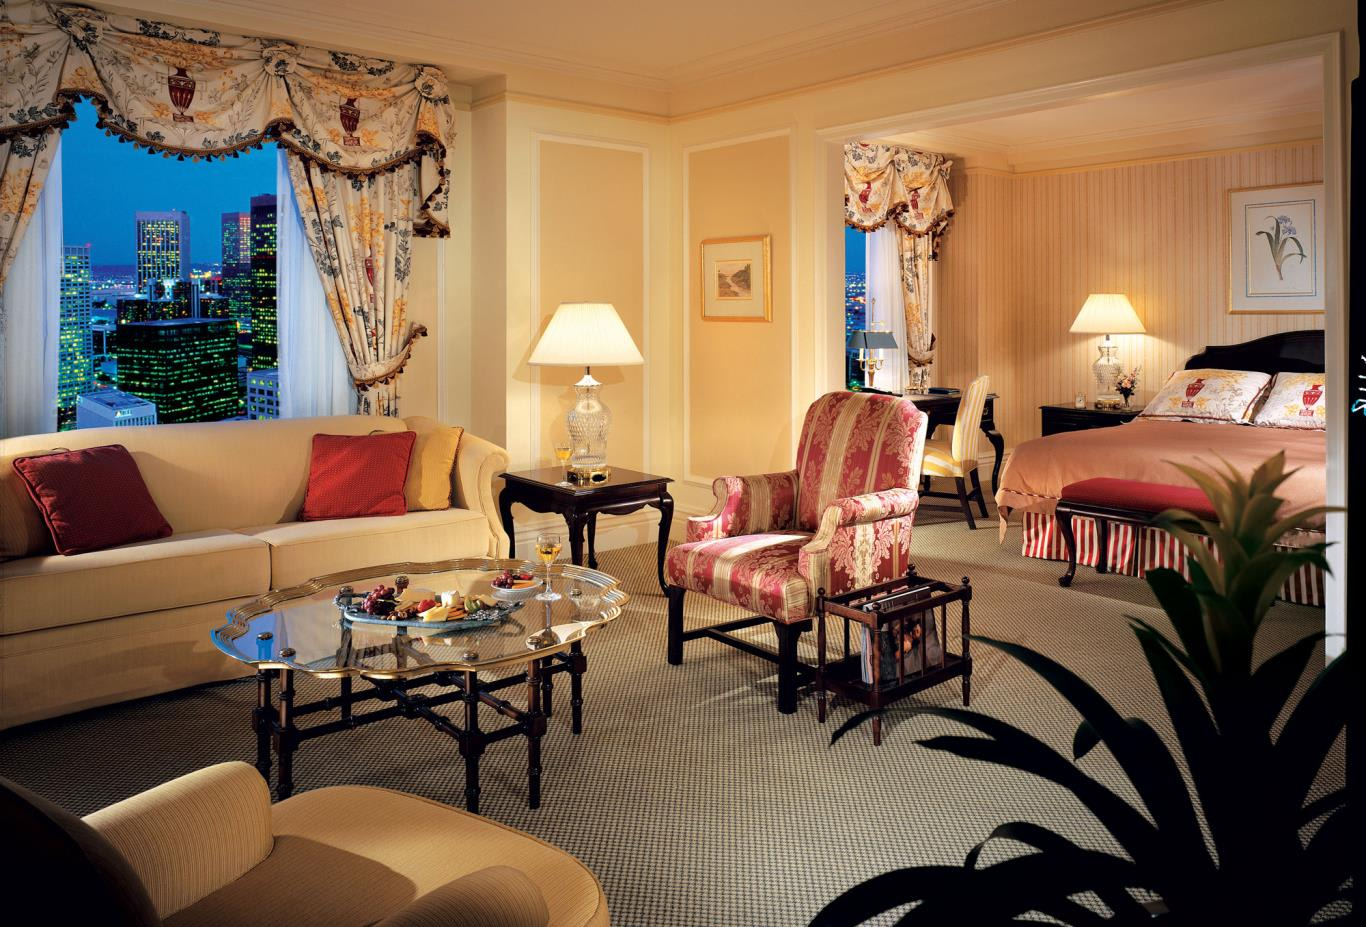 Fairmont Gold Juinor Suite